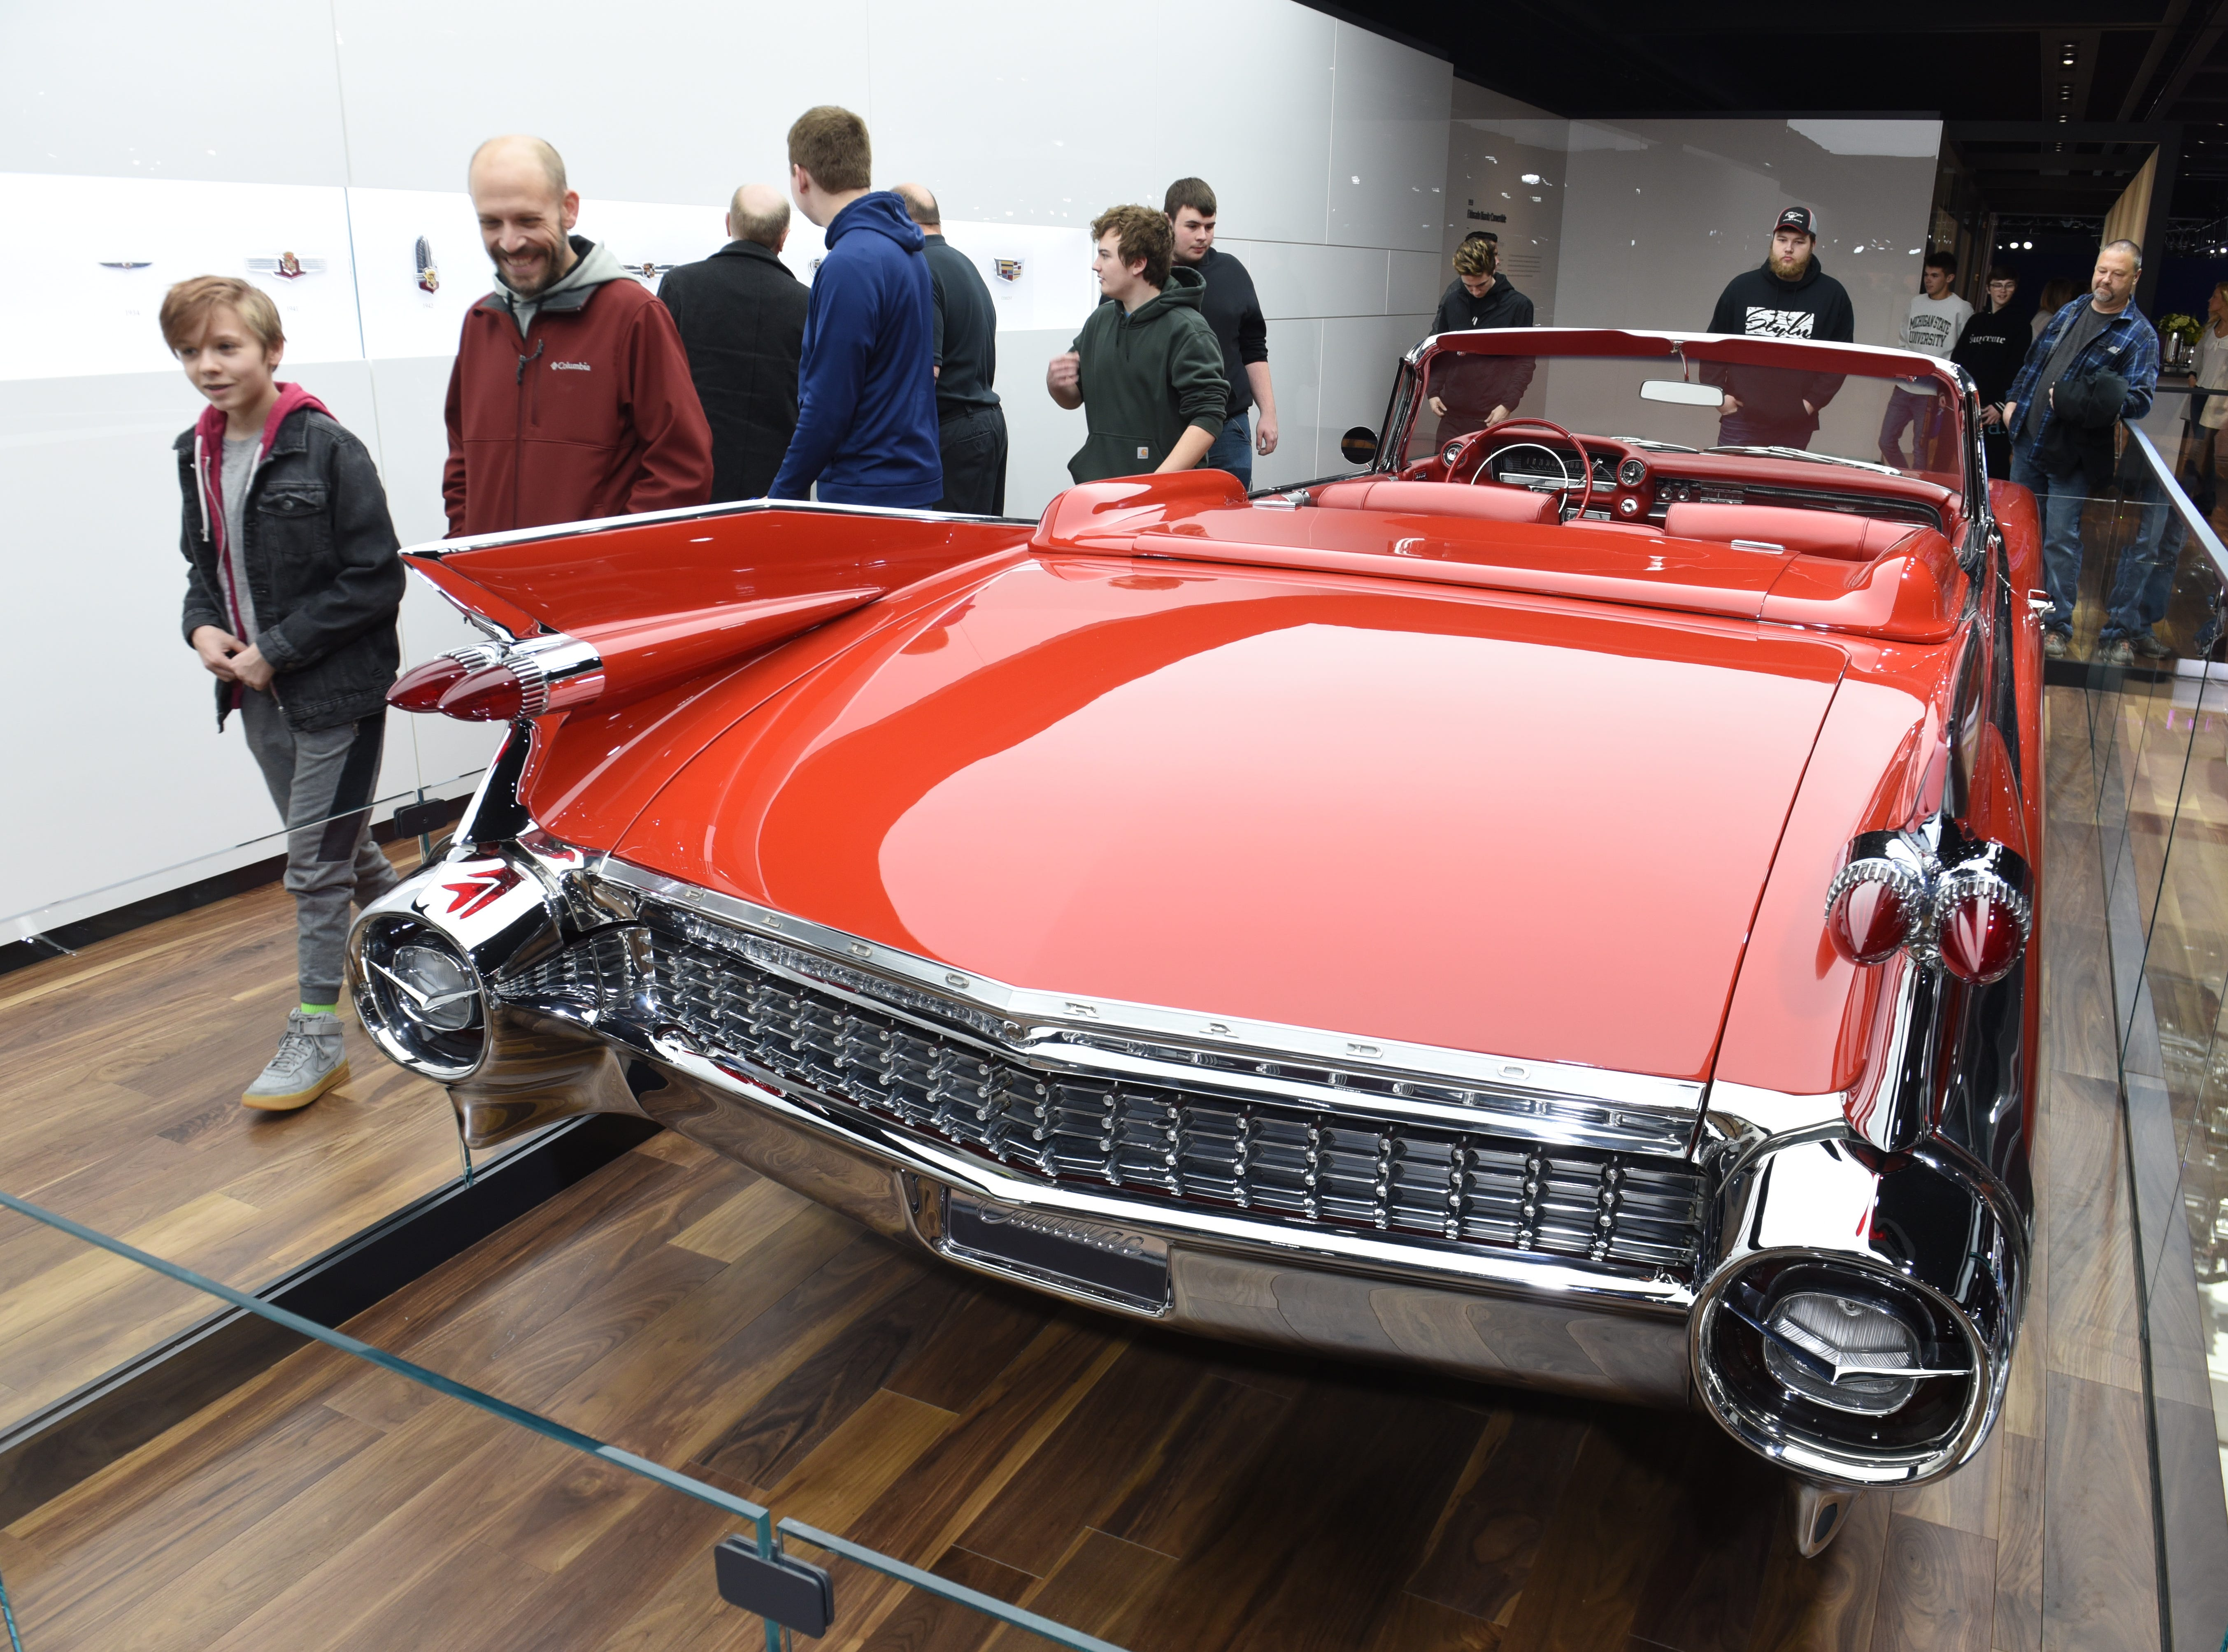 People admire the 1959 Cadillac Eldorado Biarritz Convertible at Cobo Center for the 2019 North American International Auto Show on Saturday, January 19, 2019.